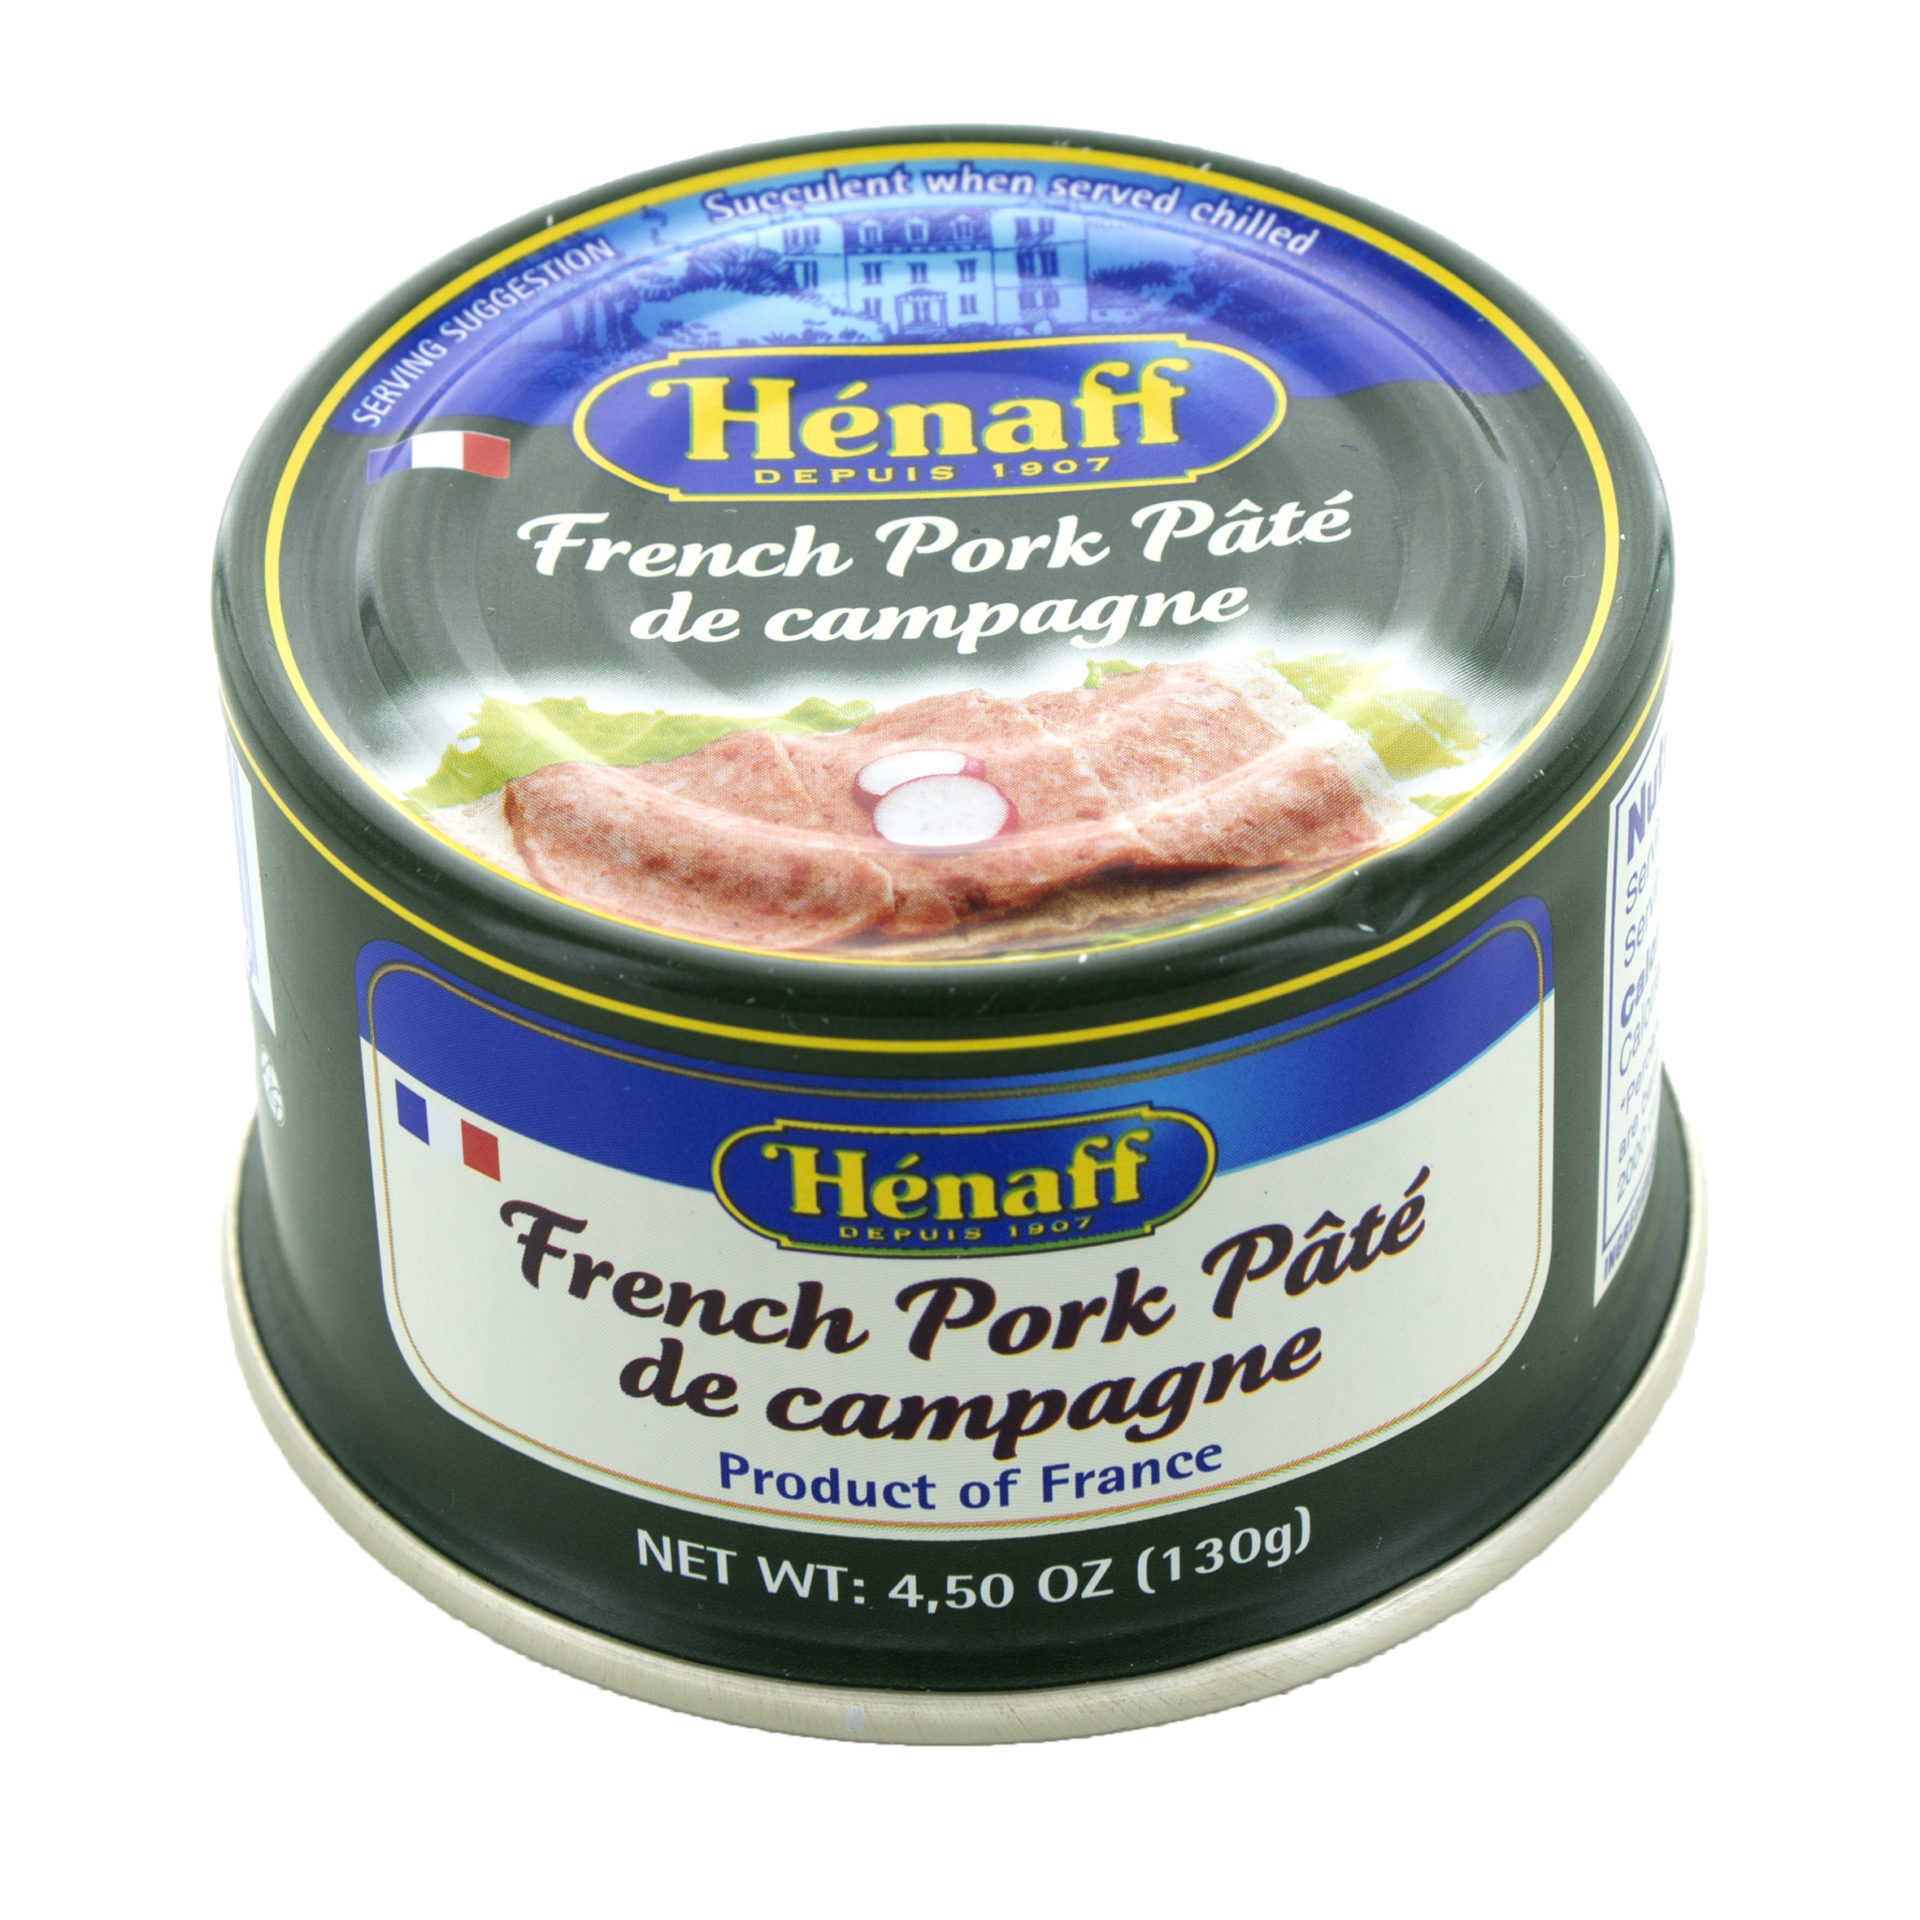 French Pork Pâté de campagne